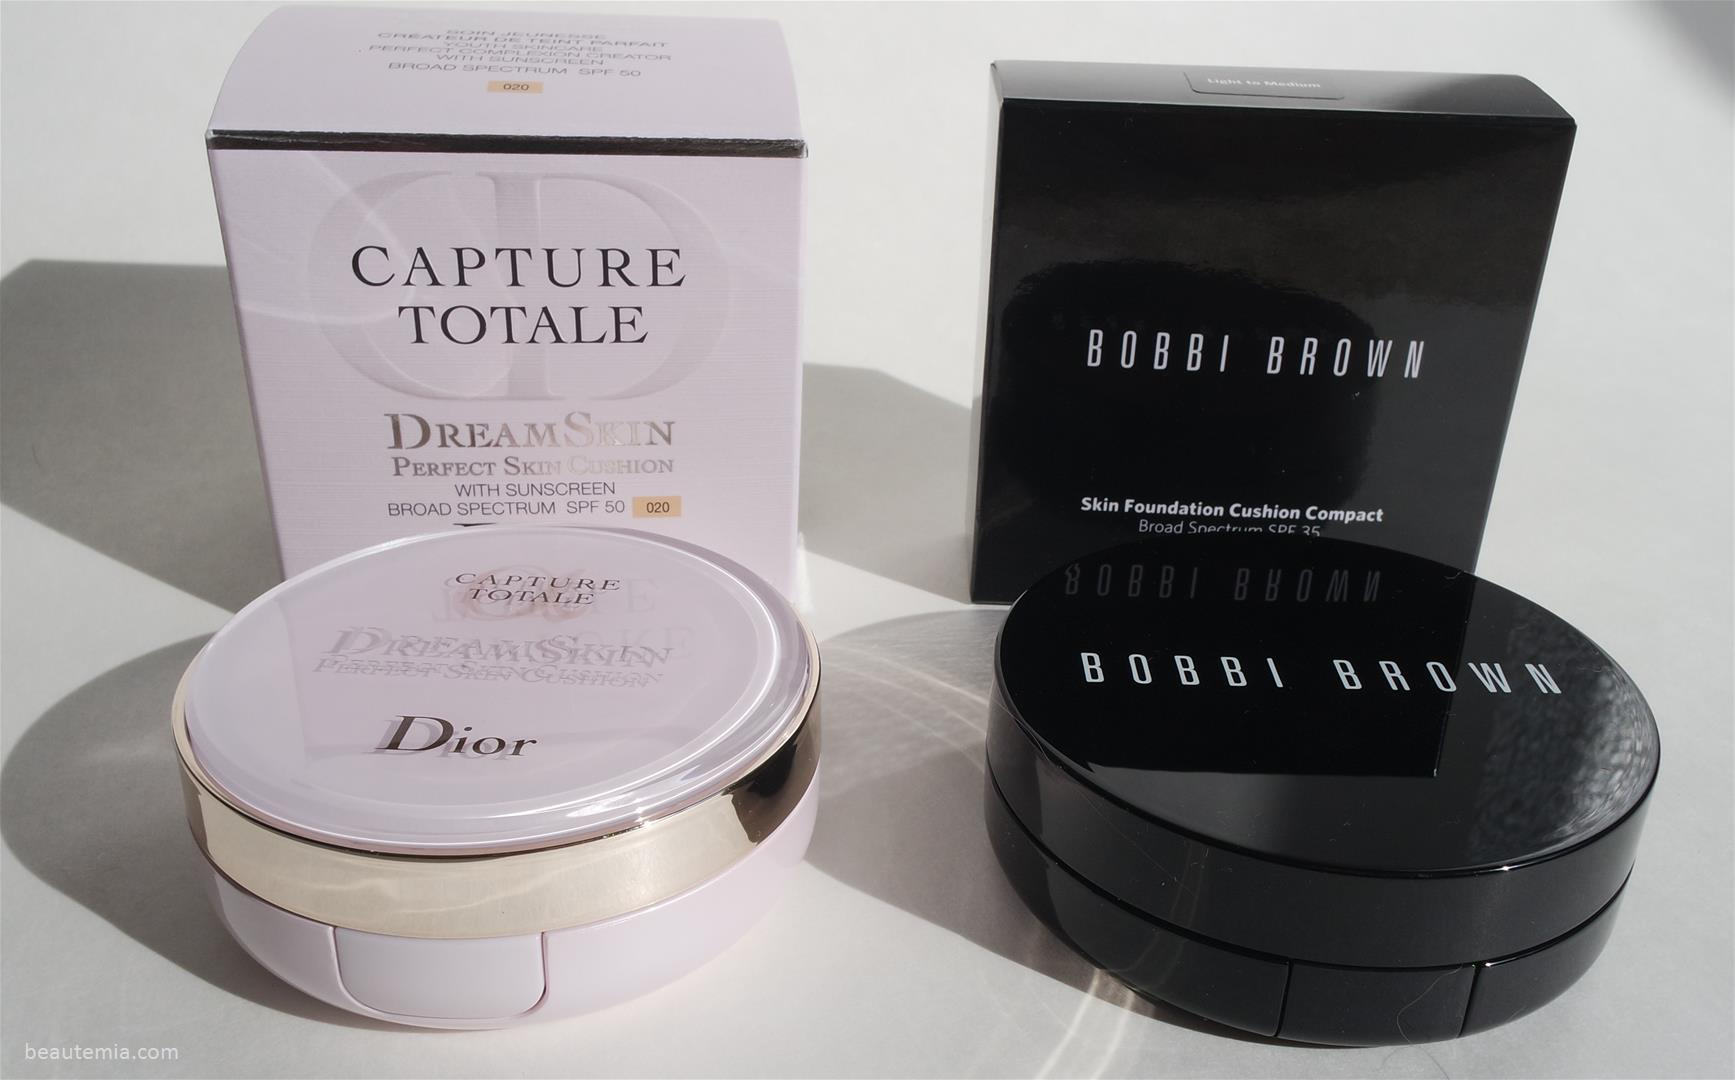 review bobbi brown skin foundation cushion compact spf 35 vs dior capture totale dream skin. Black Bedroom Furniture Sets. Home Design Ideas